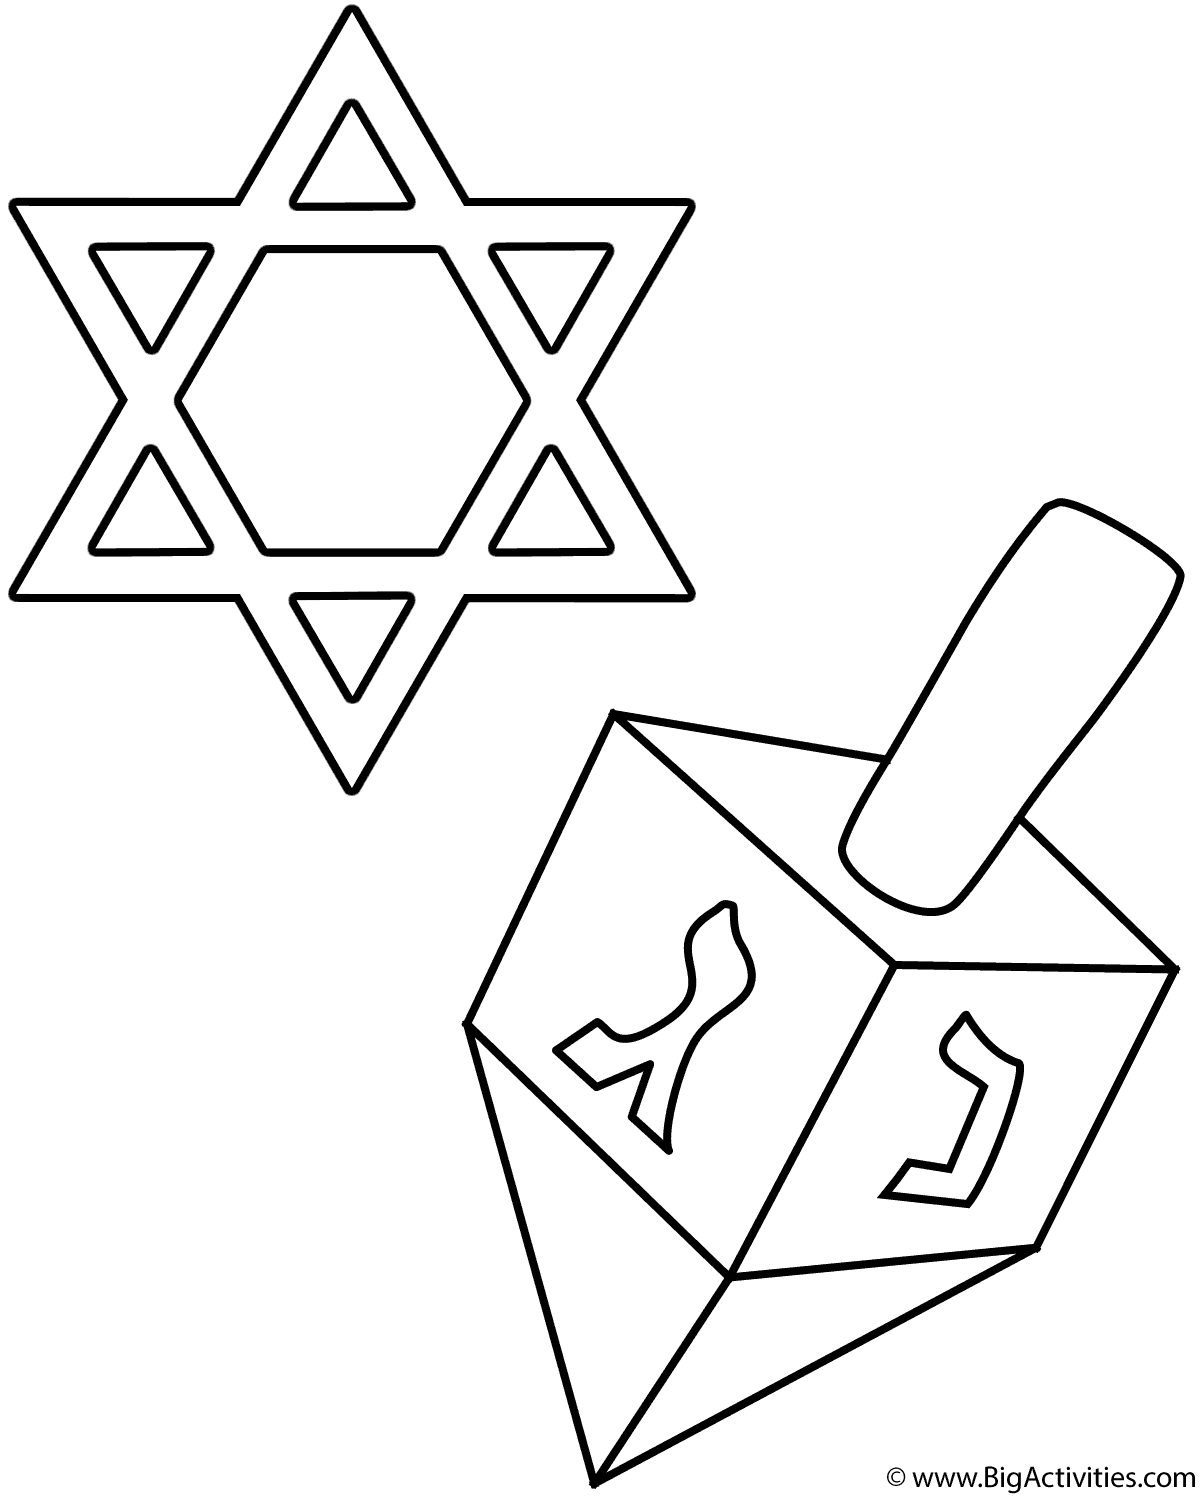 Dreidel And Star Of David